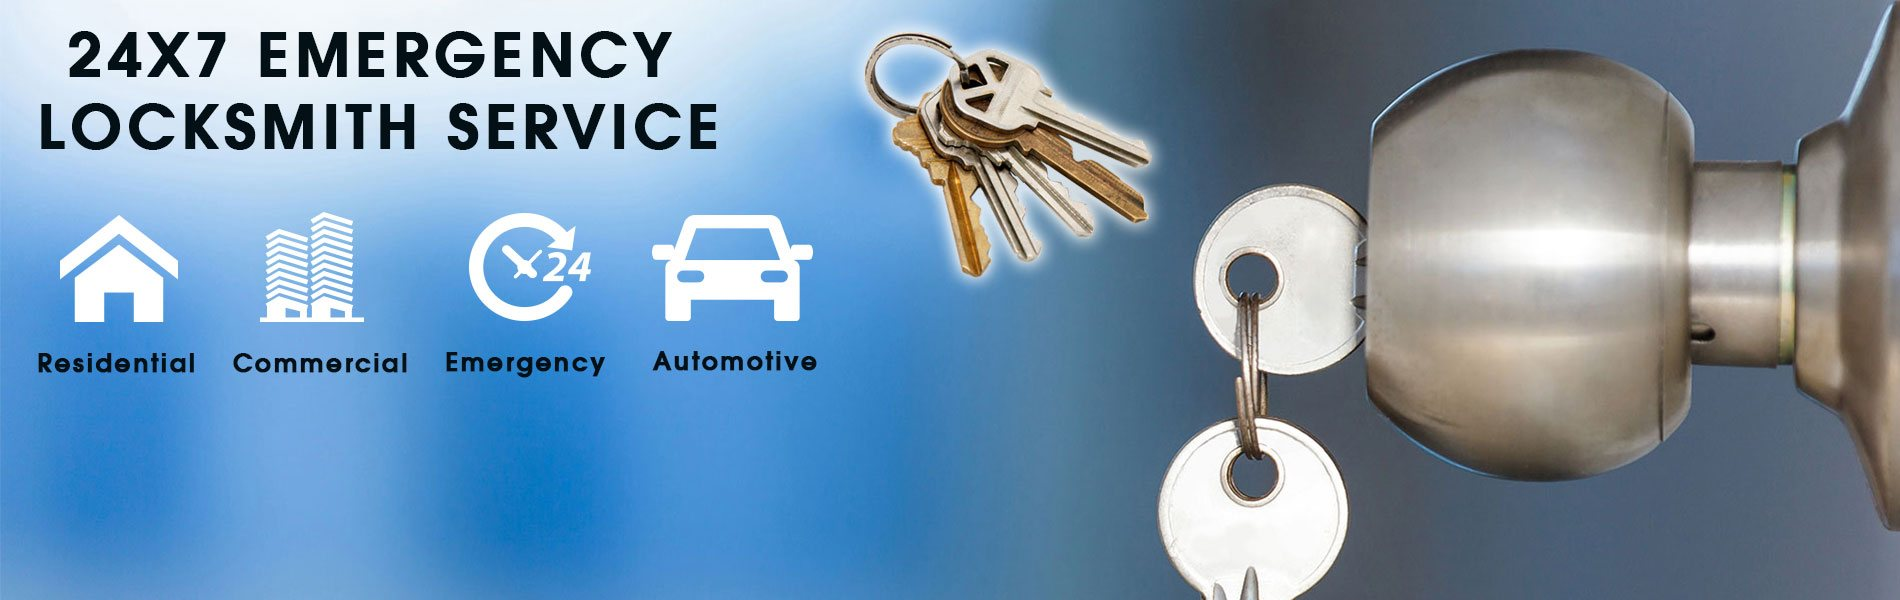 Golden Locksmith Services Portland, OR 503-610-9268